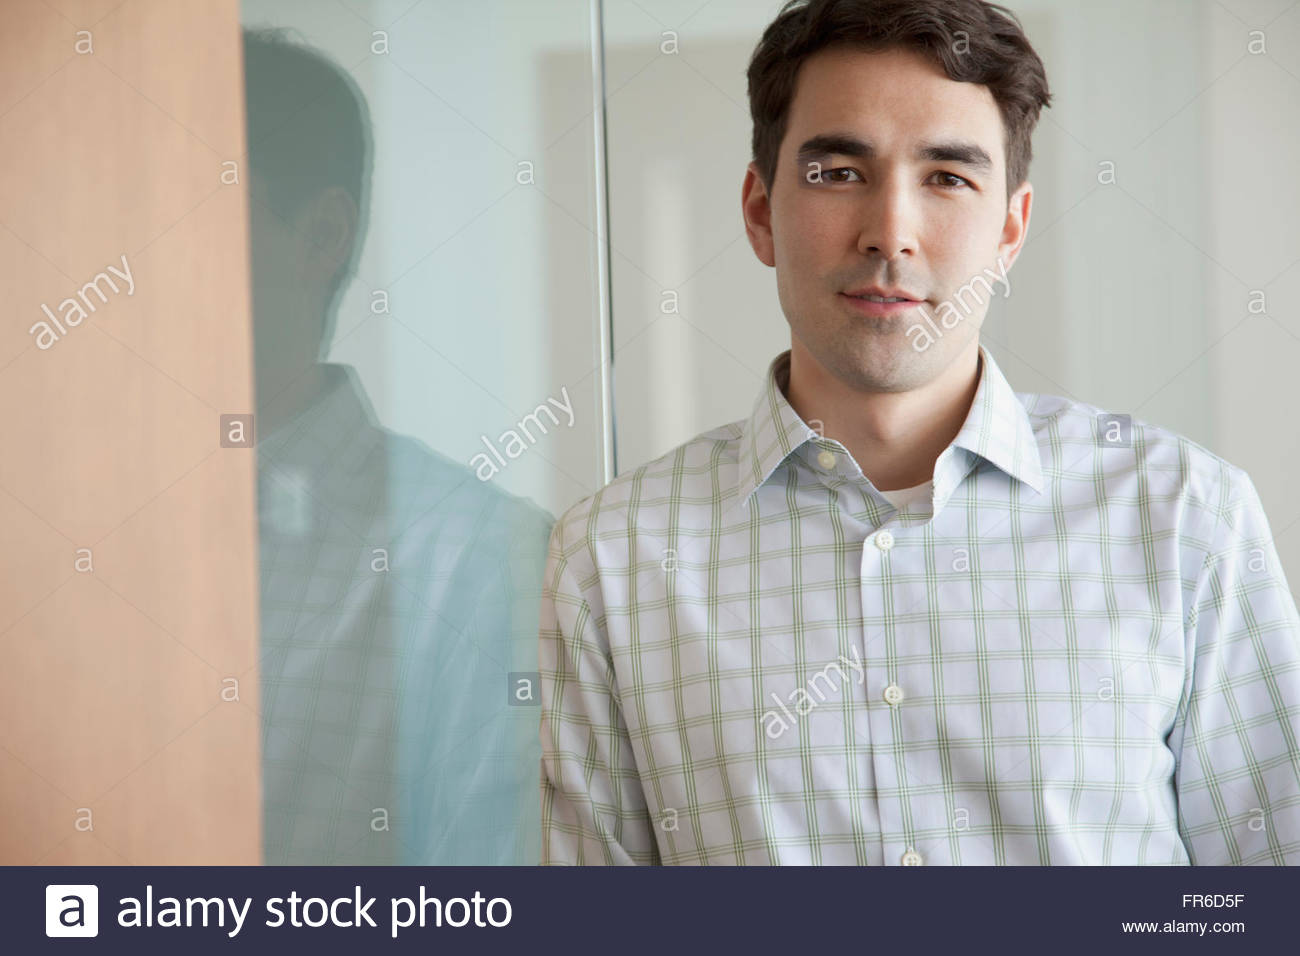 young clean-cut businessman - Stock Image